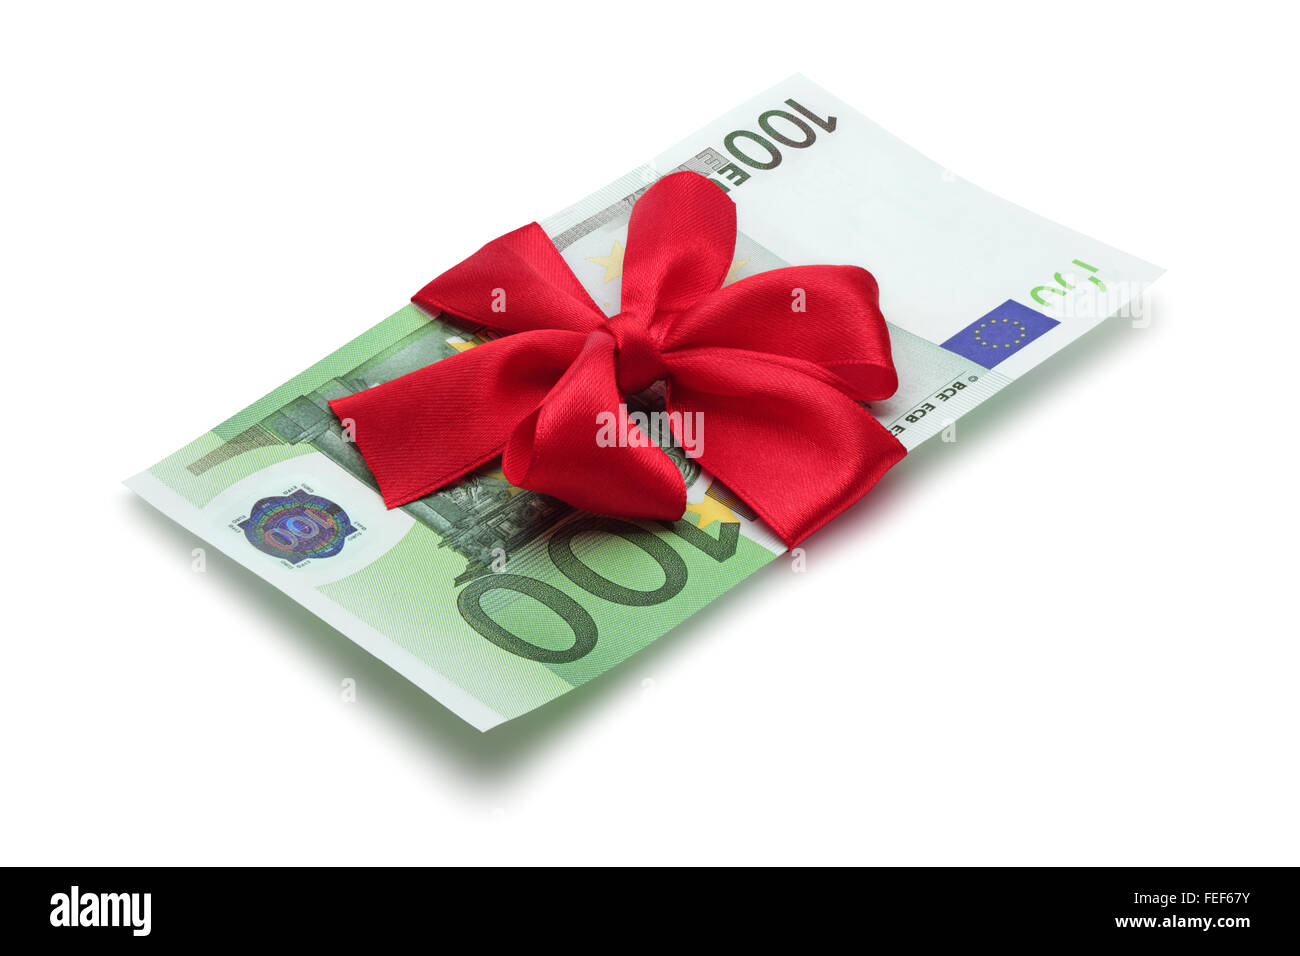 One hundred euro banknote with red bow, isolated on the white background, clipping path included. Stock Photo